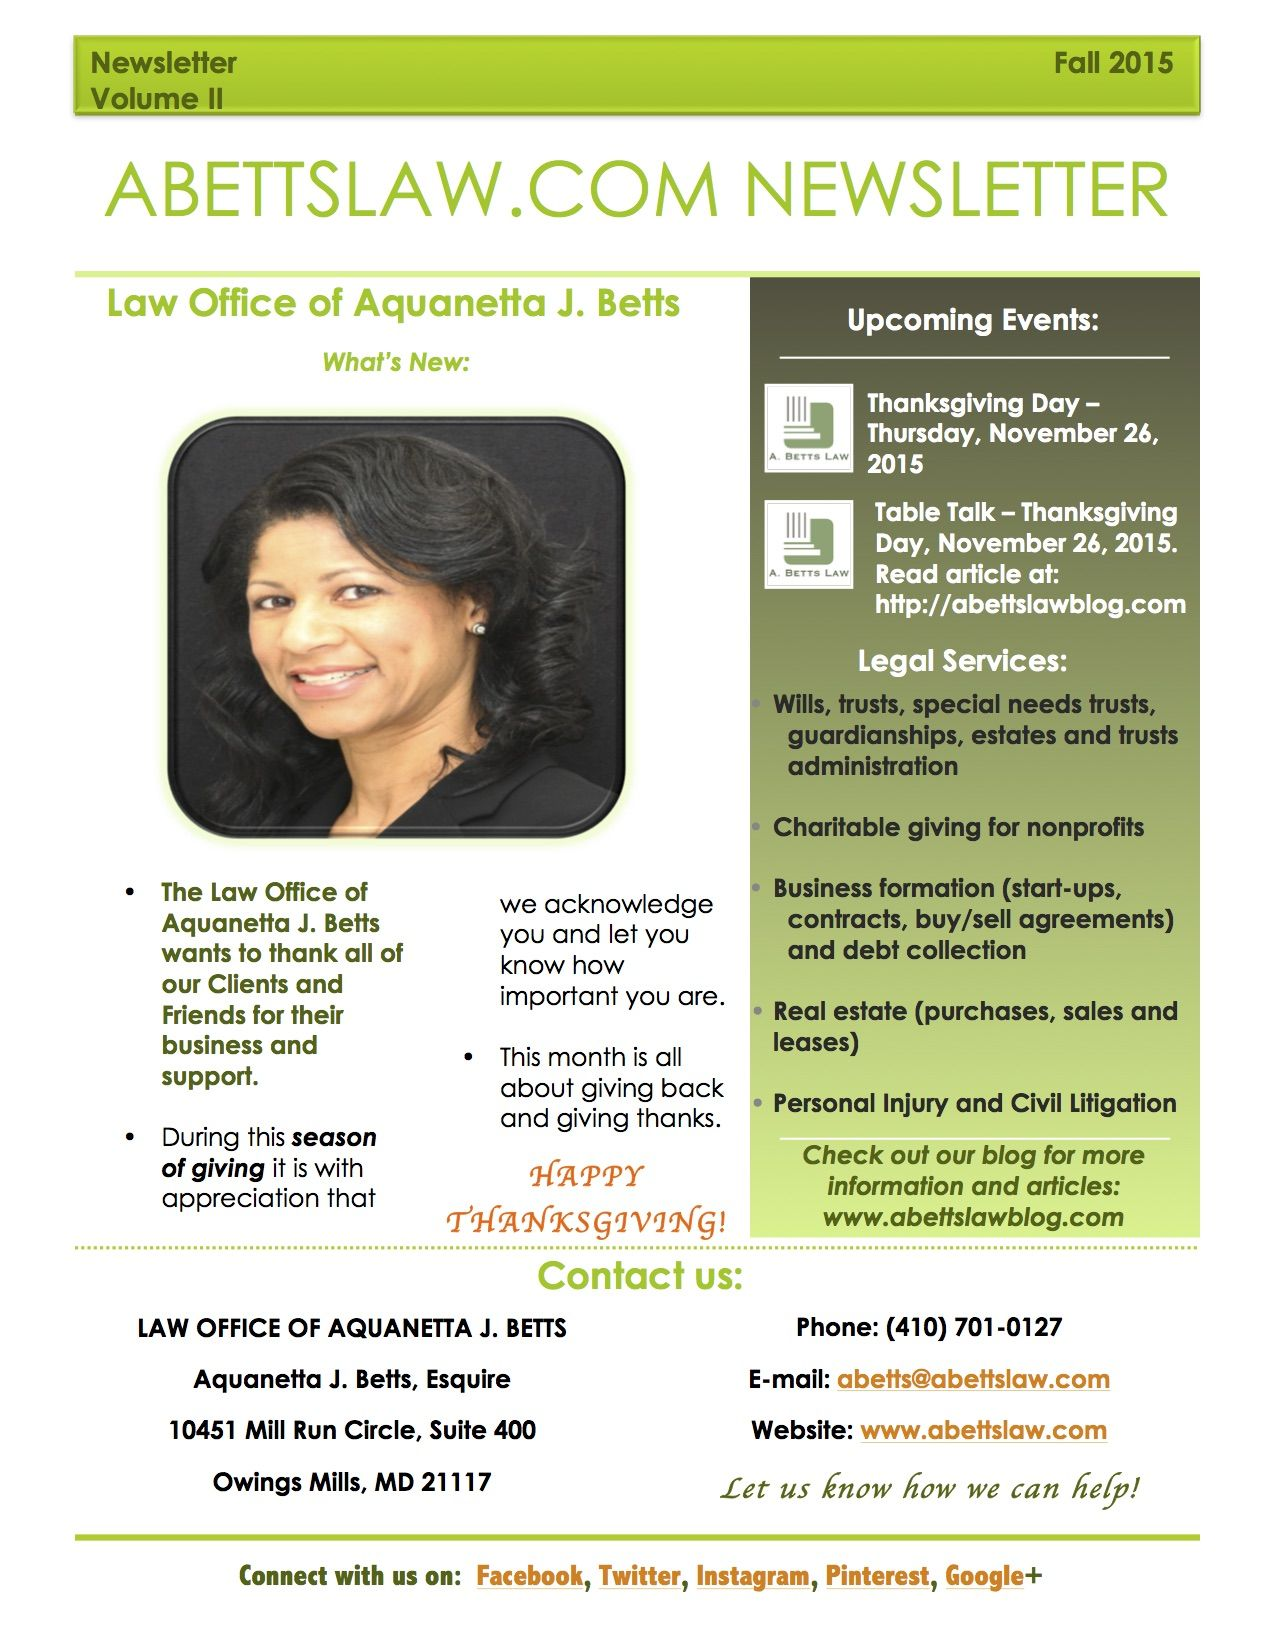 The Newsletter is out. This edition gives